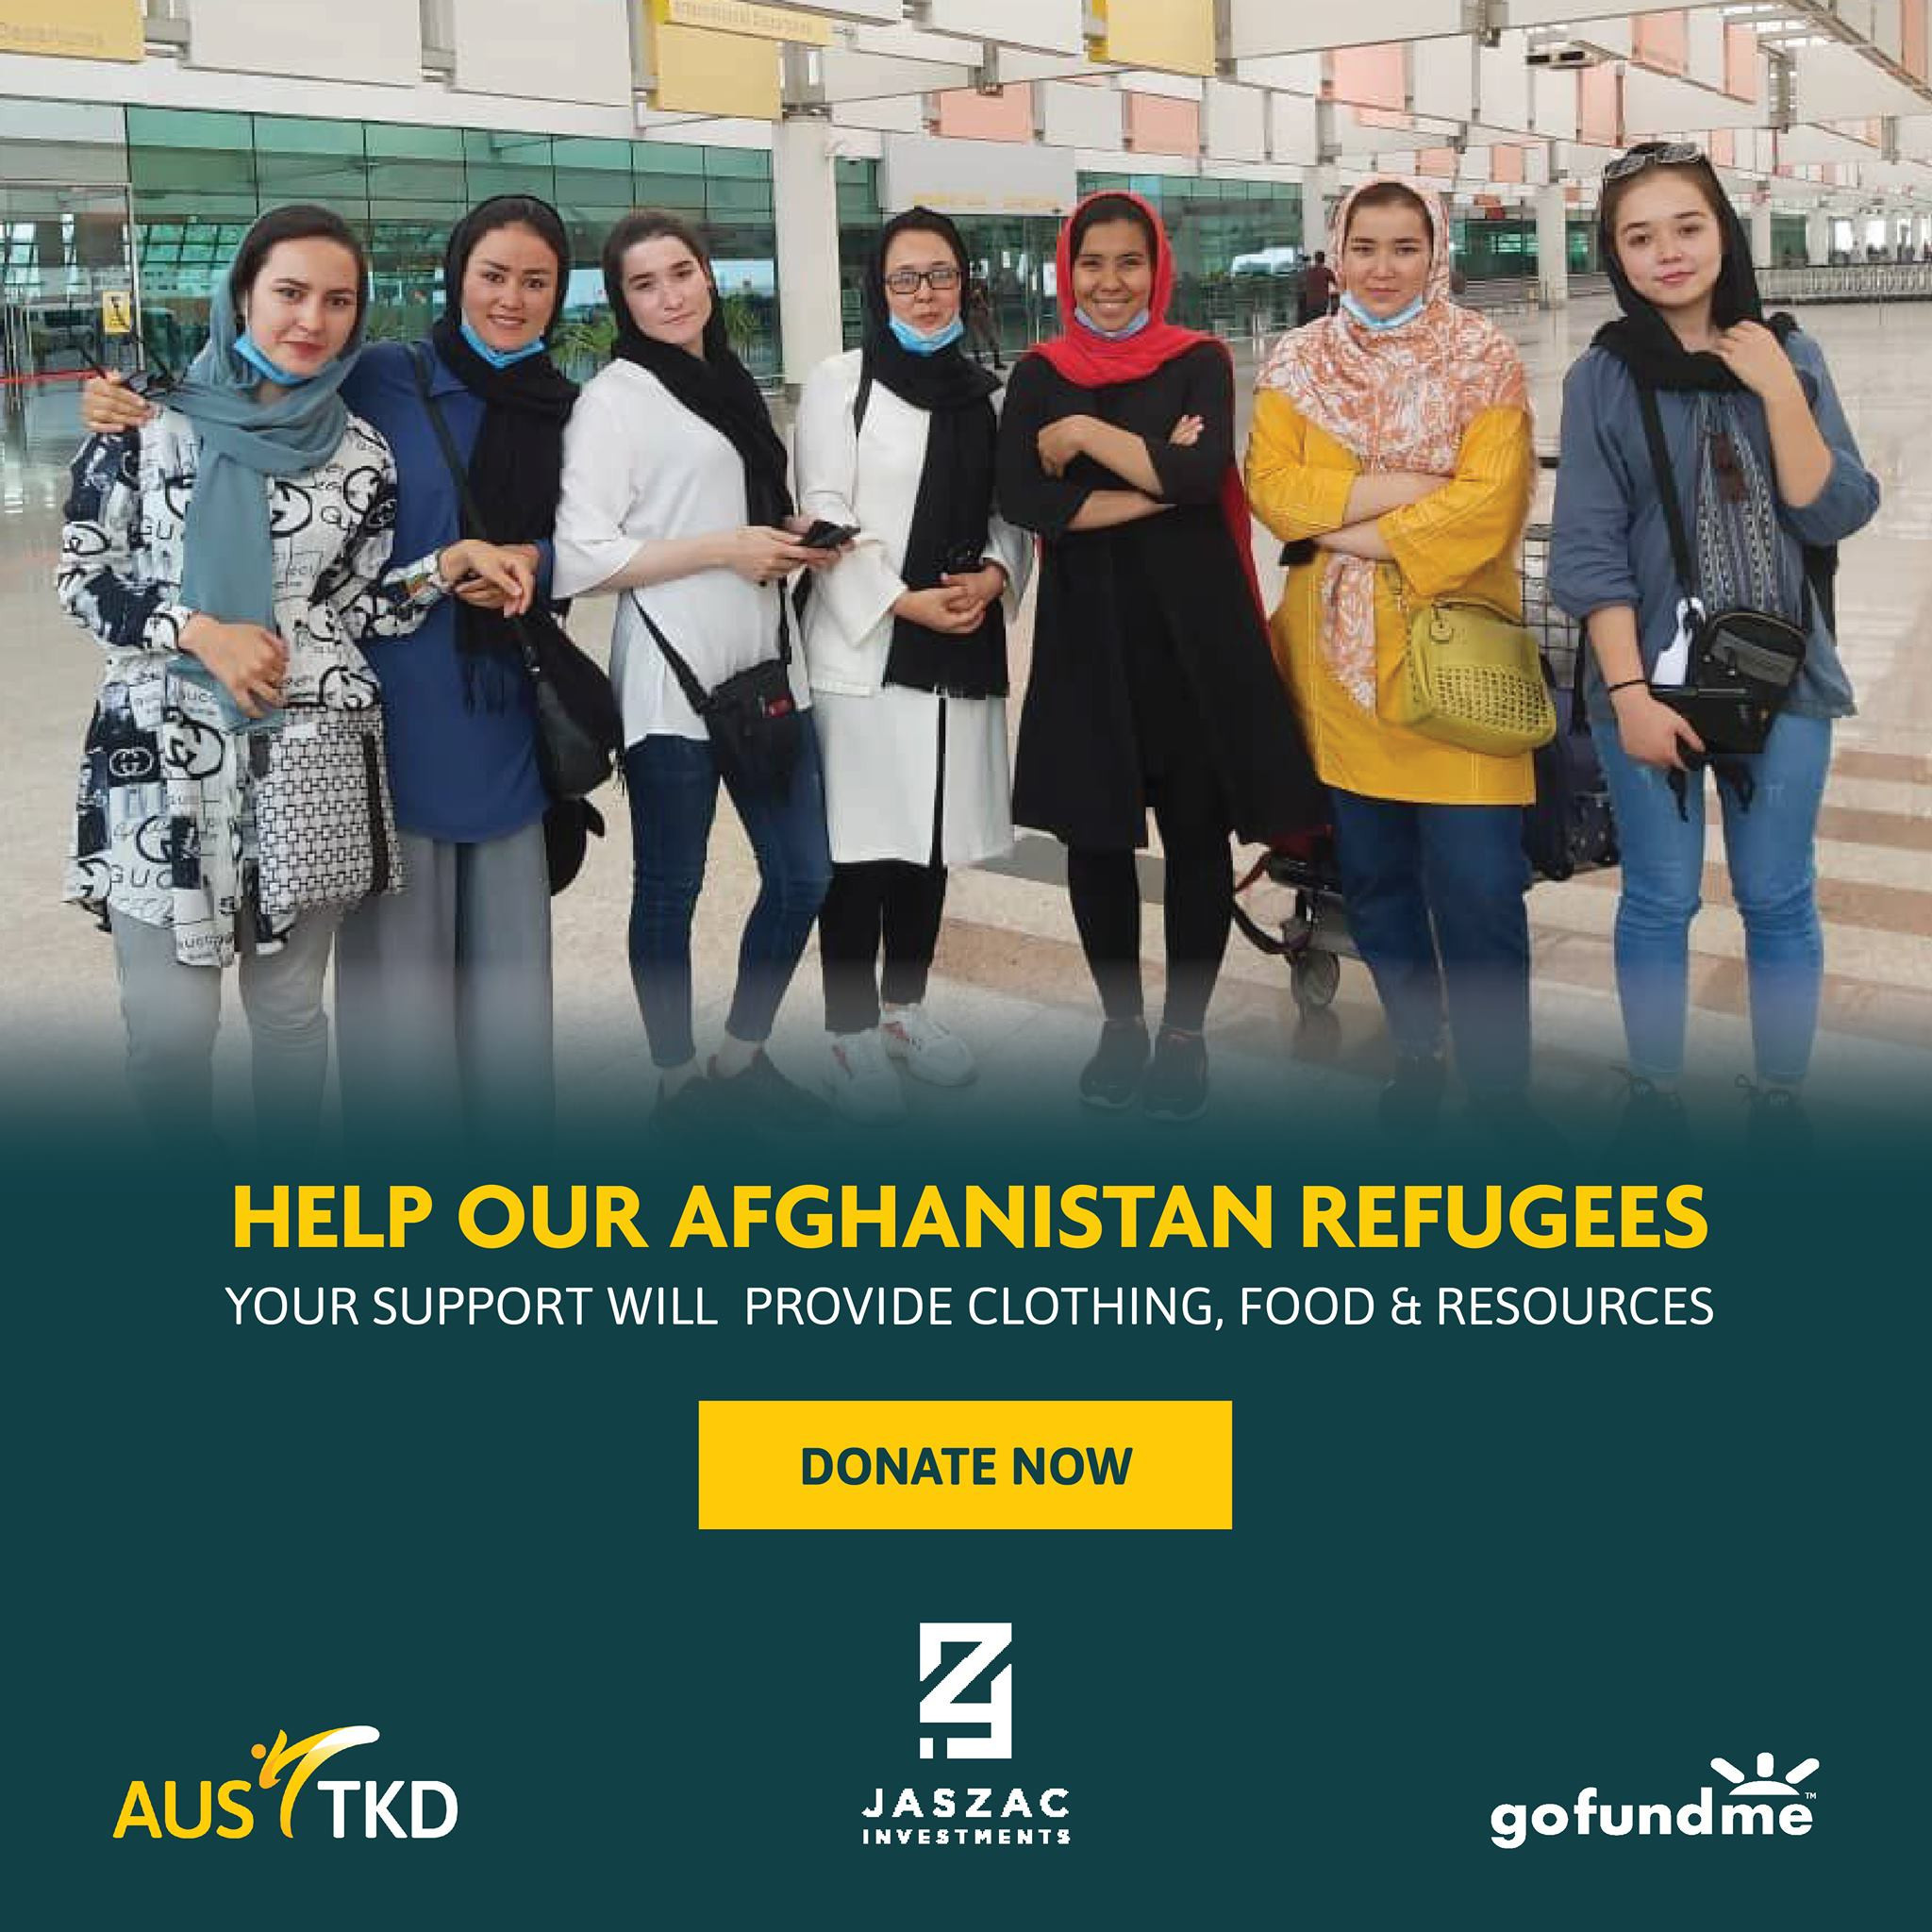 Fundraising campaign underway for Afghan taekwondo players given refuge in Australia